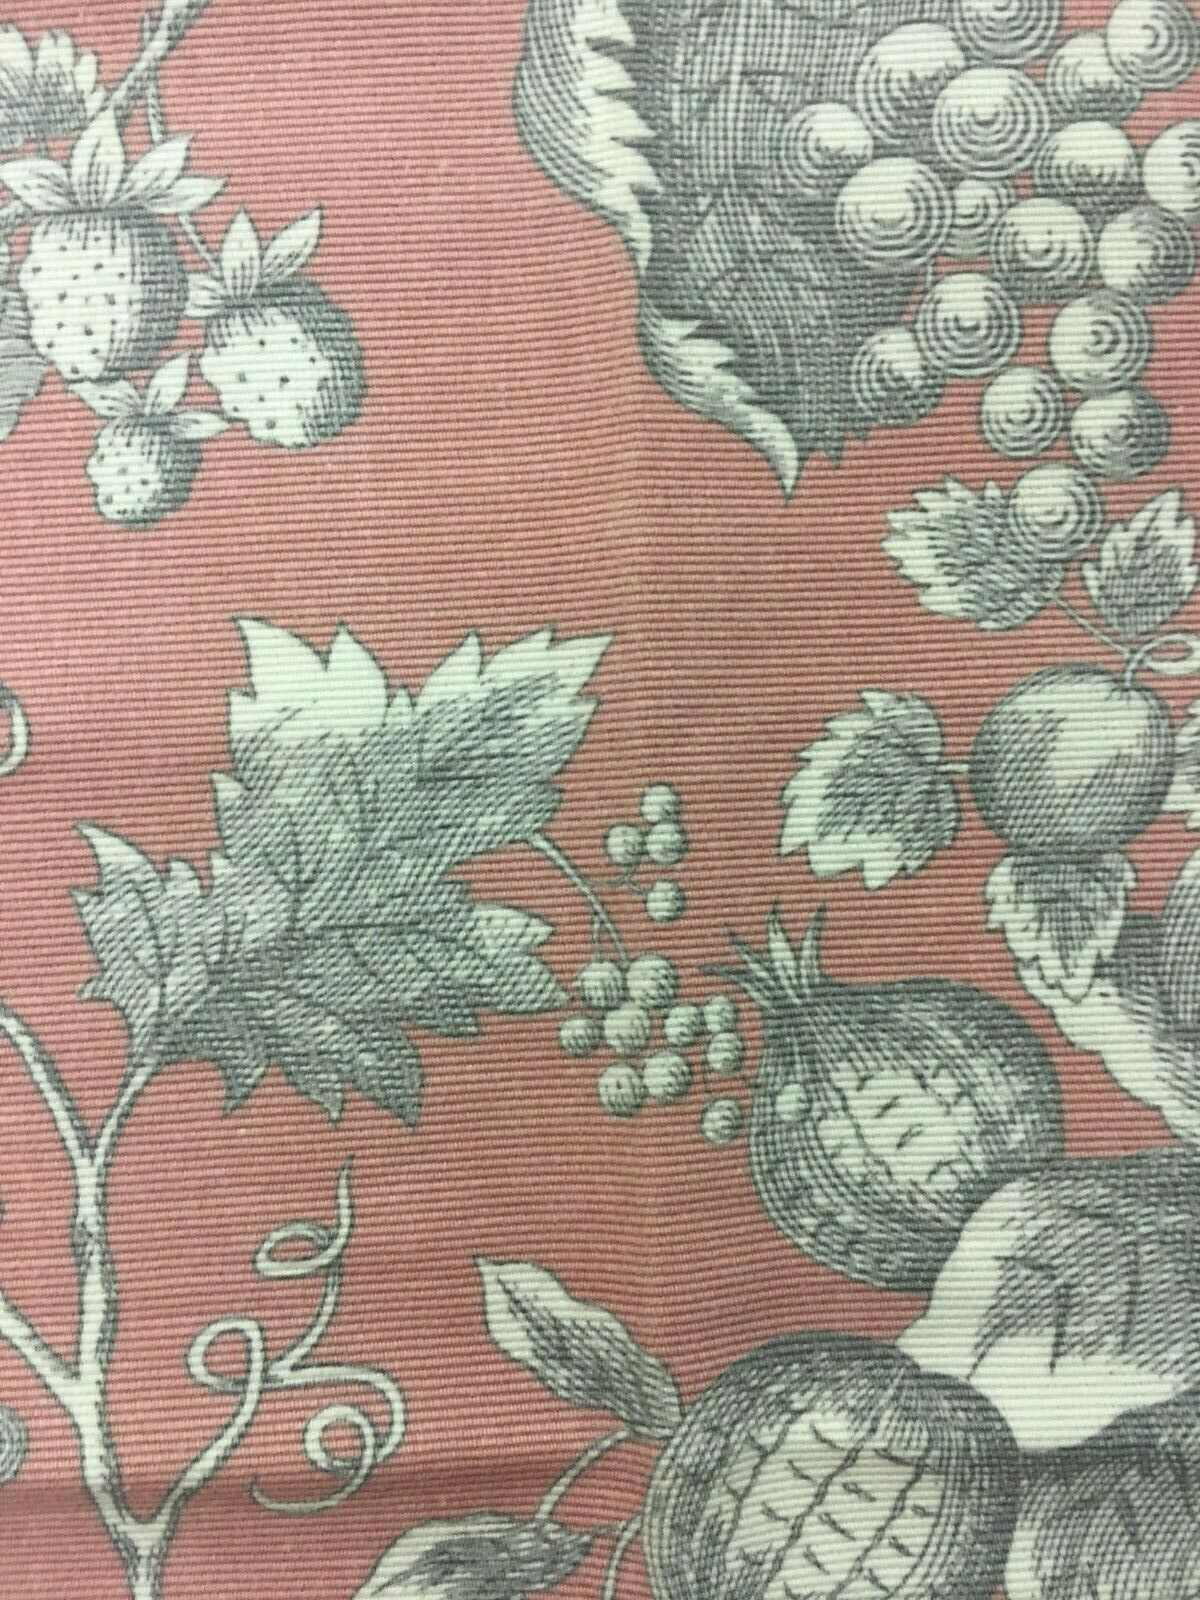 Braemore Pink Fruit and Floral Print Upholstery Drapery Fabric 2.125 yds